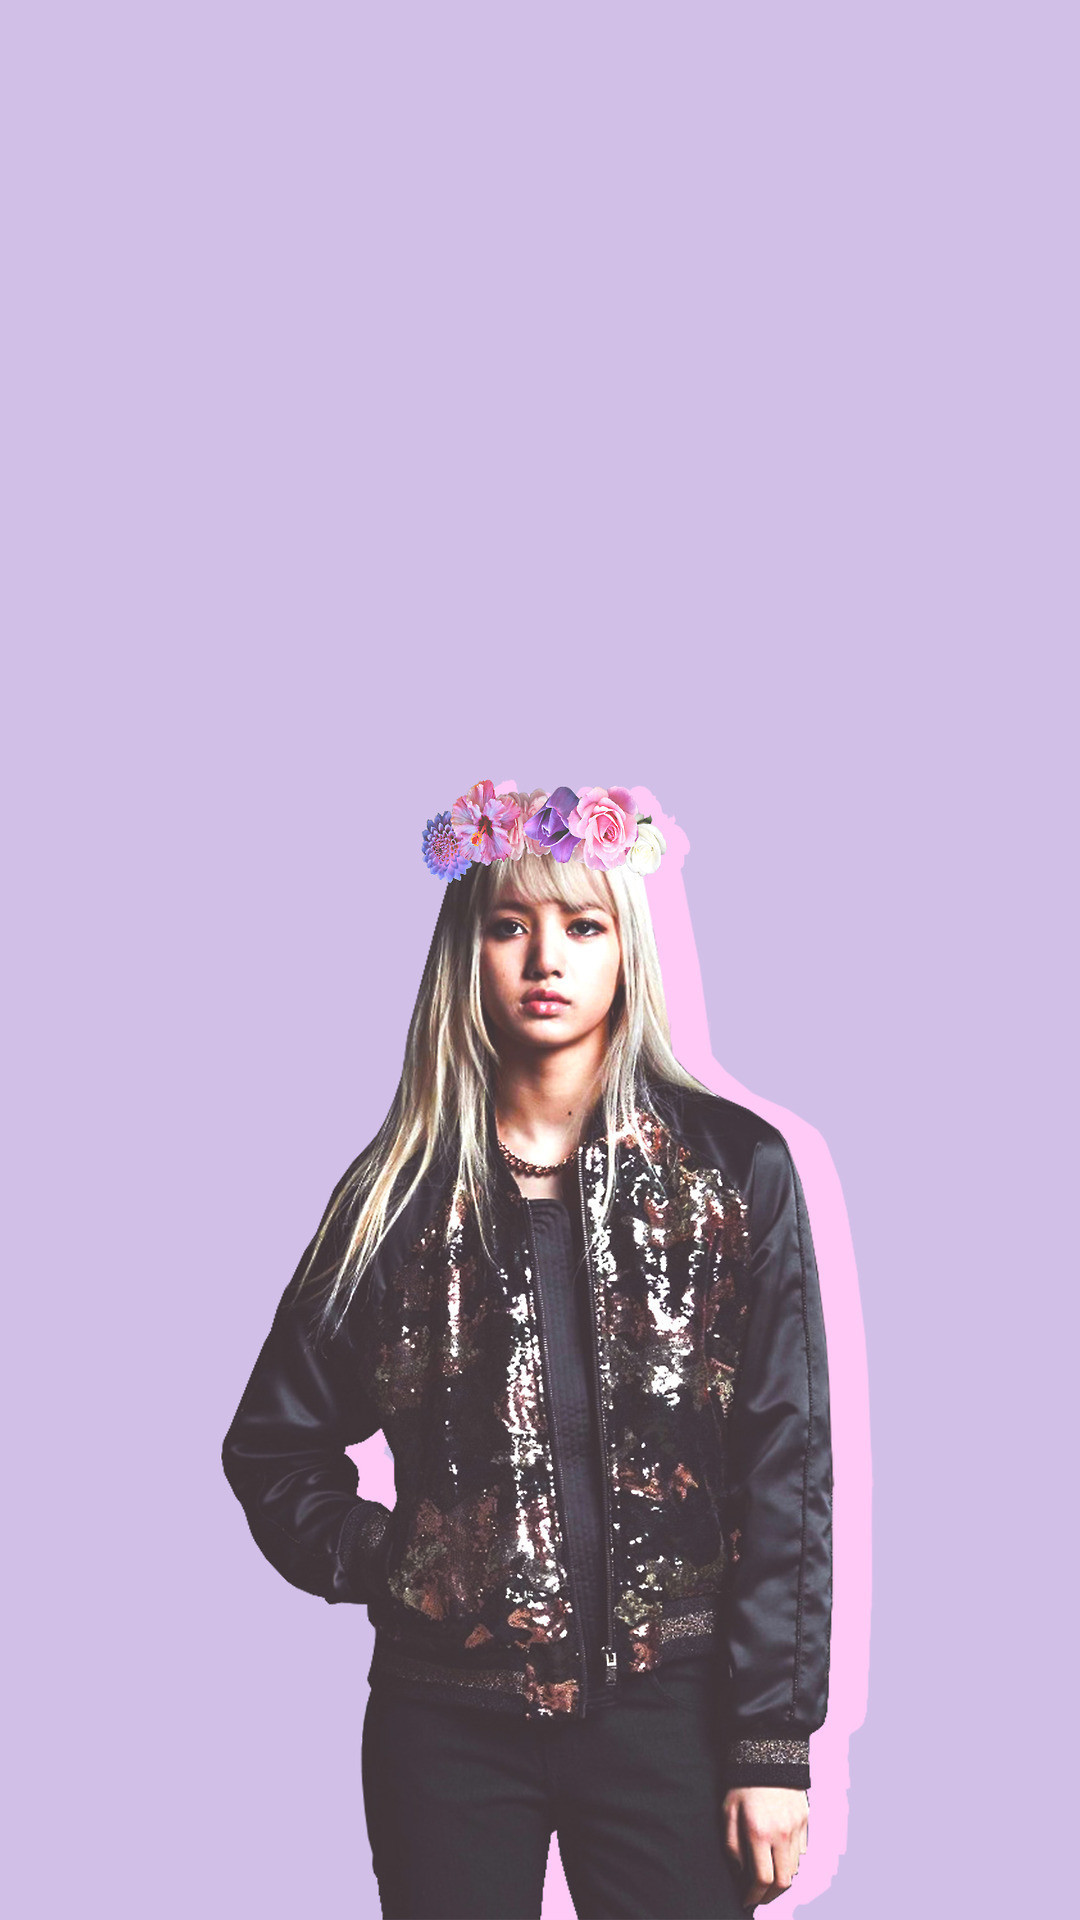 Blackpink Wallpapers 63 images 1080x1920